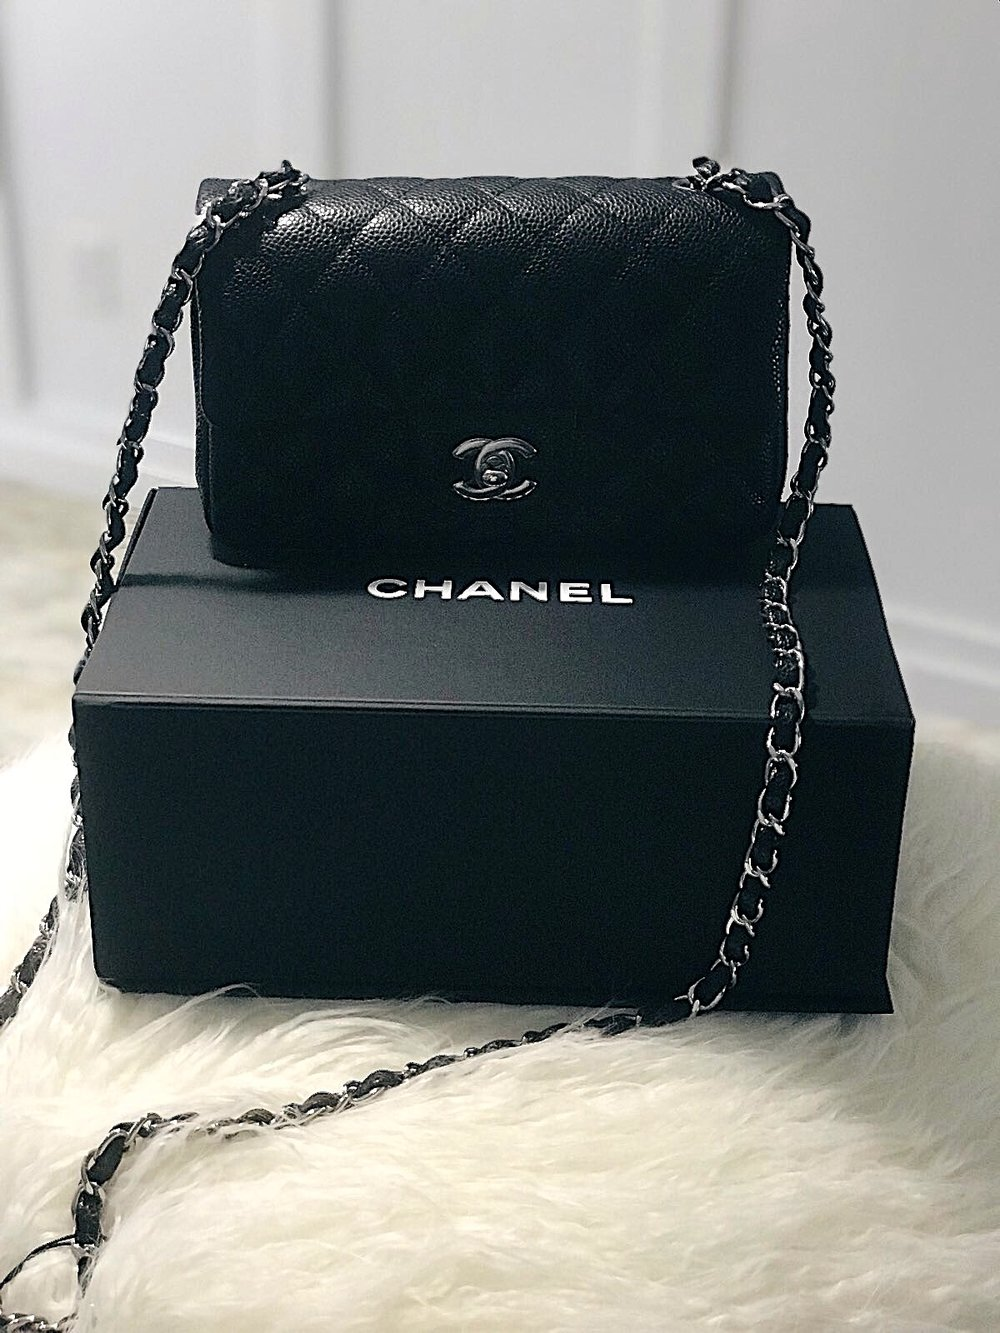 chanel-classic-mini-rectangle-flap-bag-photos-unboxing.jpg